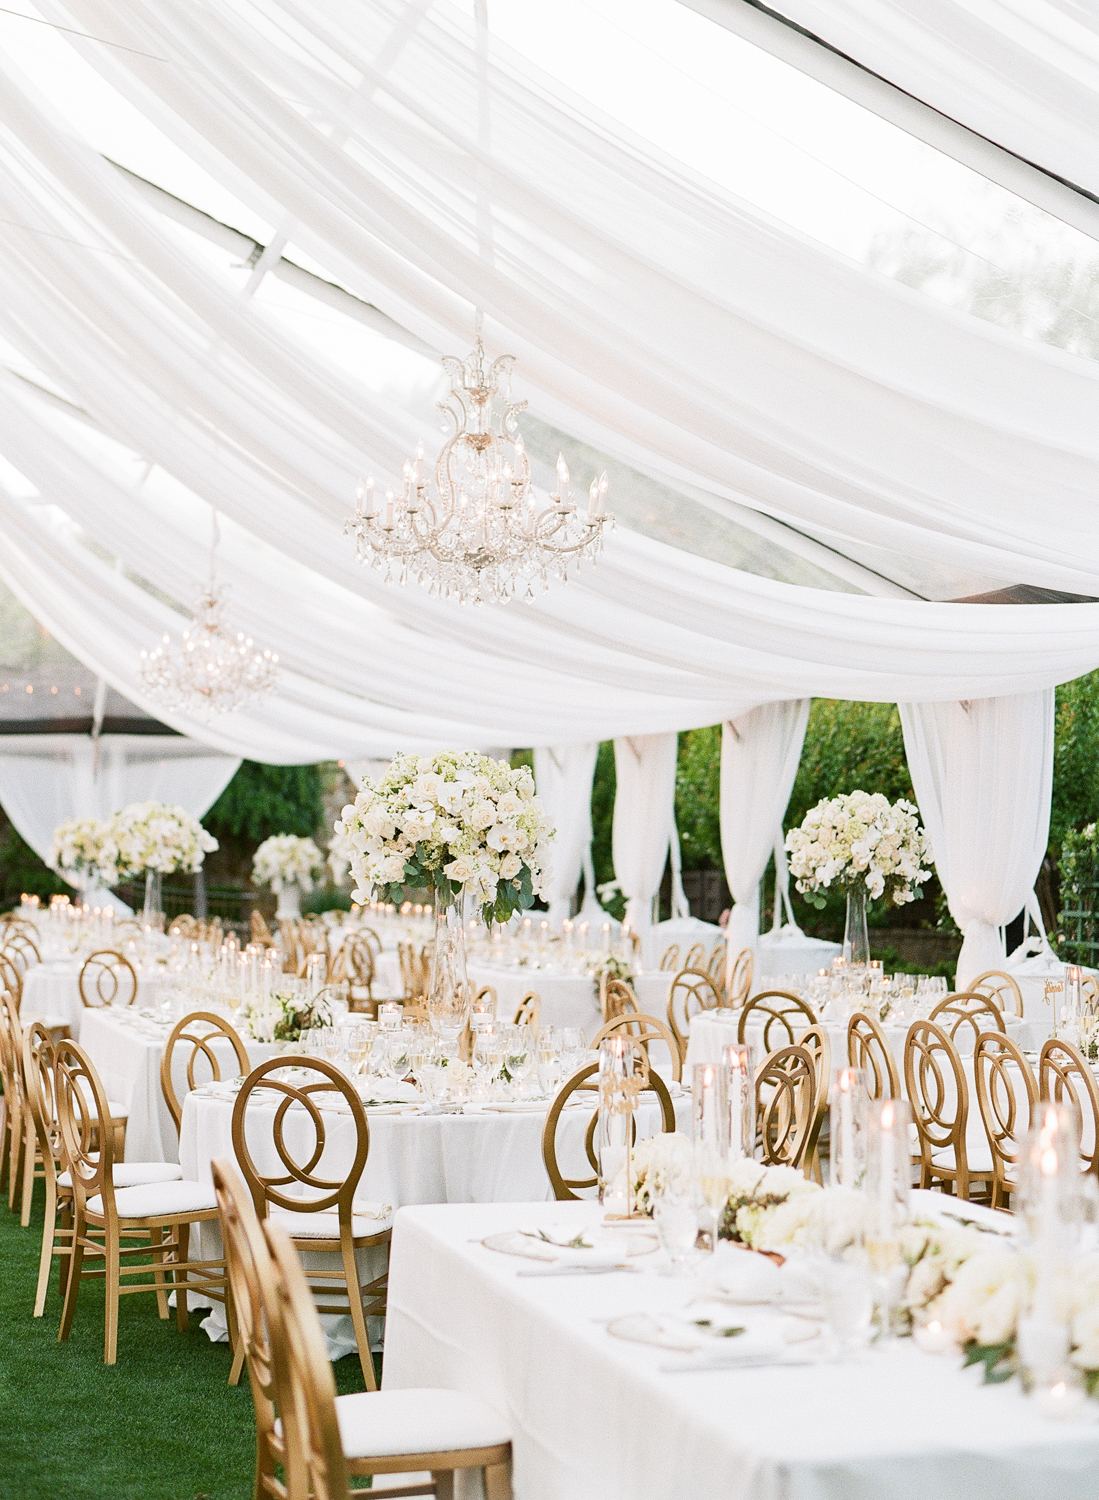 Dreamy white linens draped from the ceiling of the tent with crystal chandeliers over gold and white reception tables; Sylvie Gil Photography